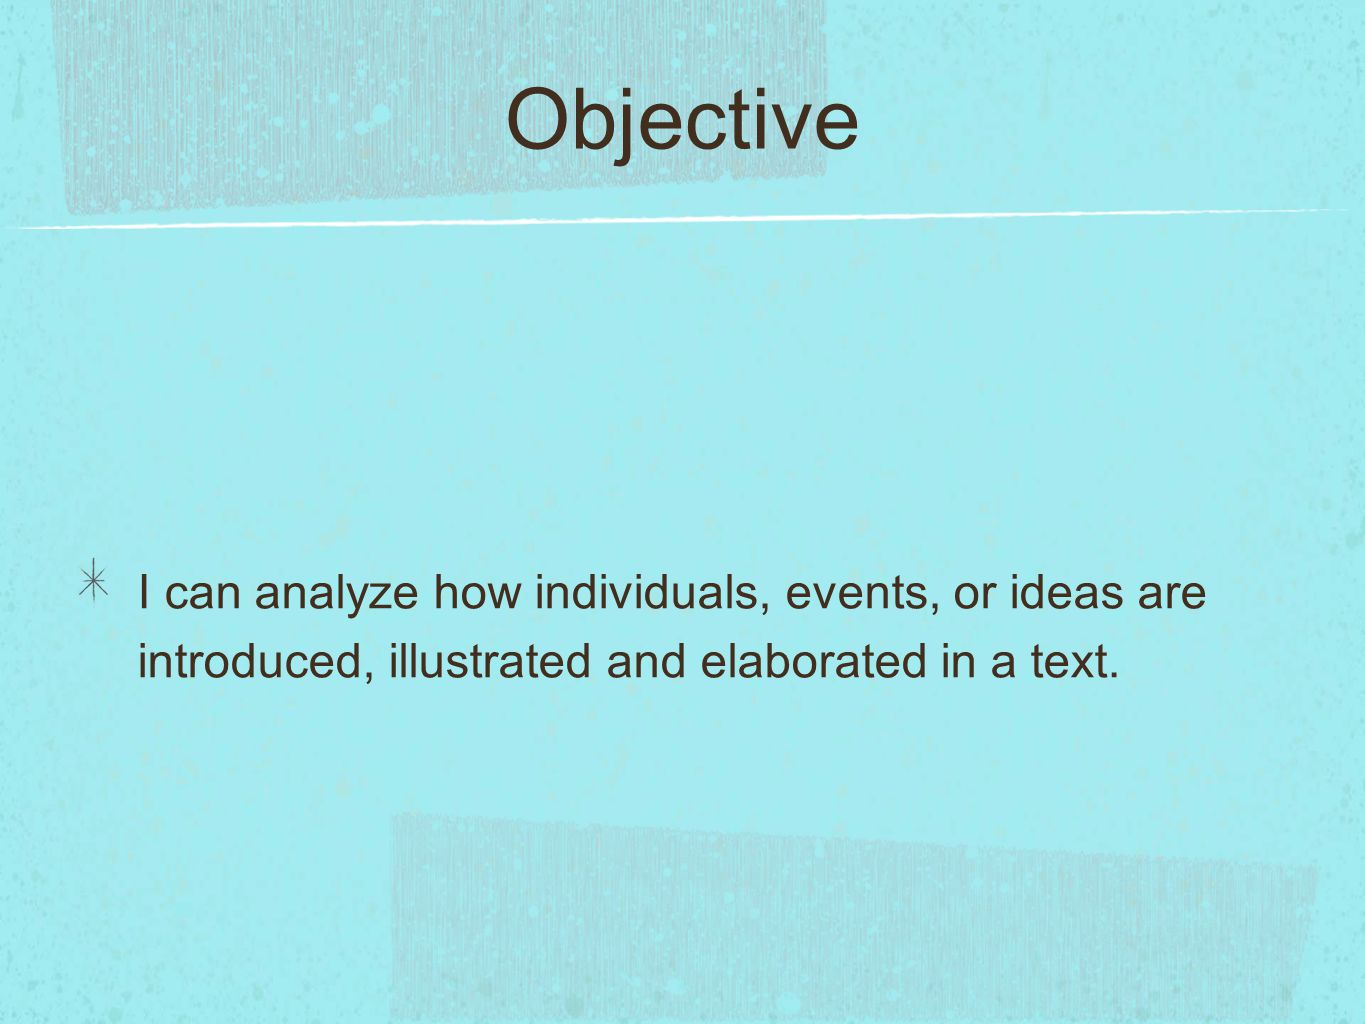 Objective I can analyze how individuals, events, or ideas are introduced, illustrated and elaborated in a text.